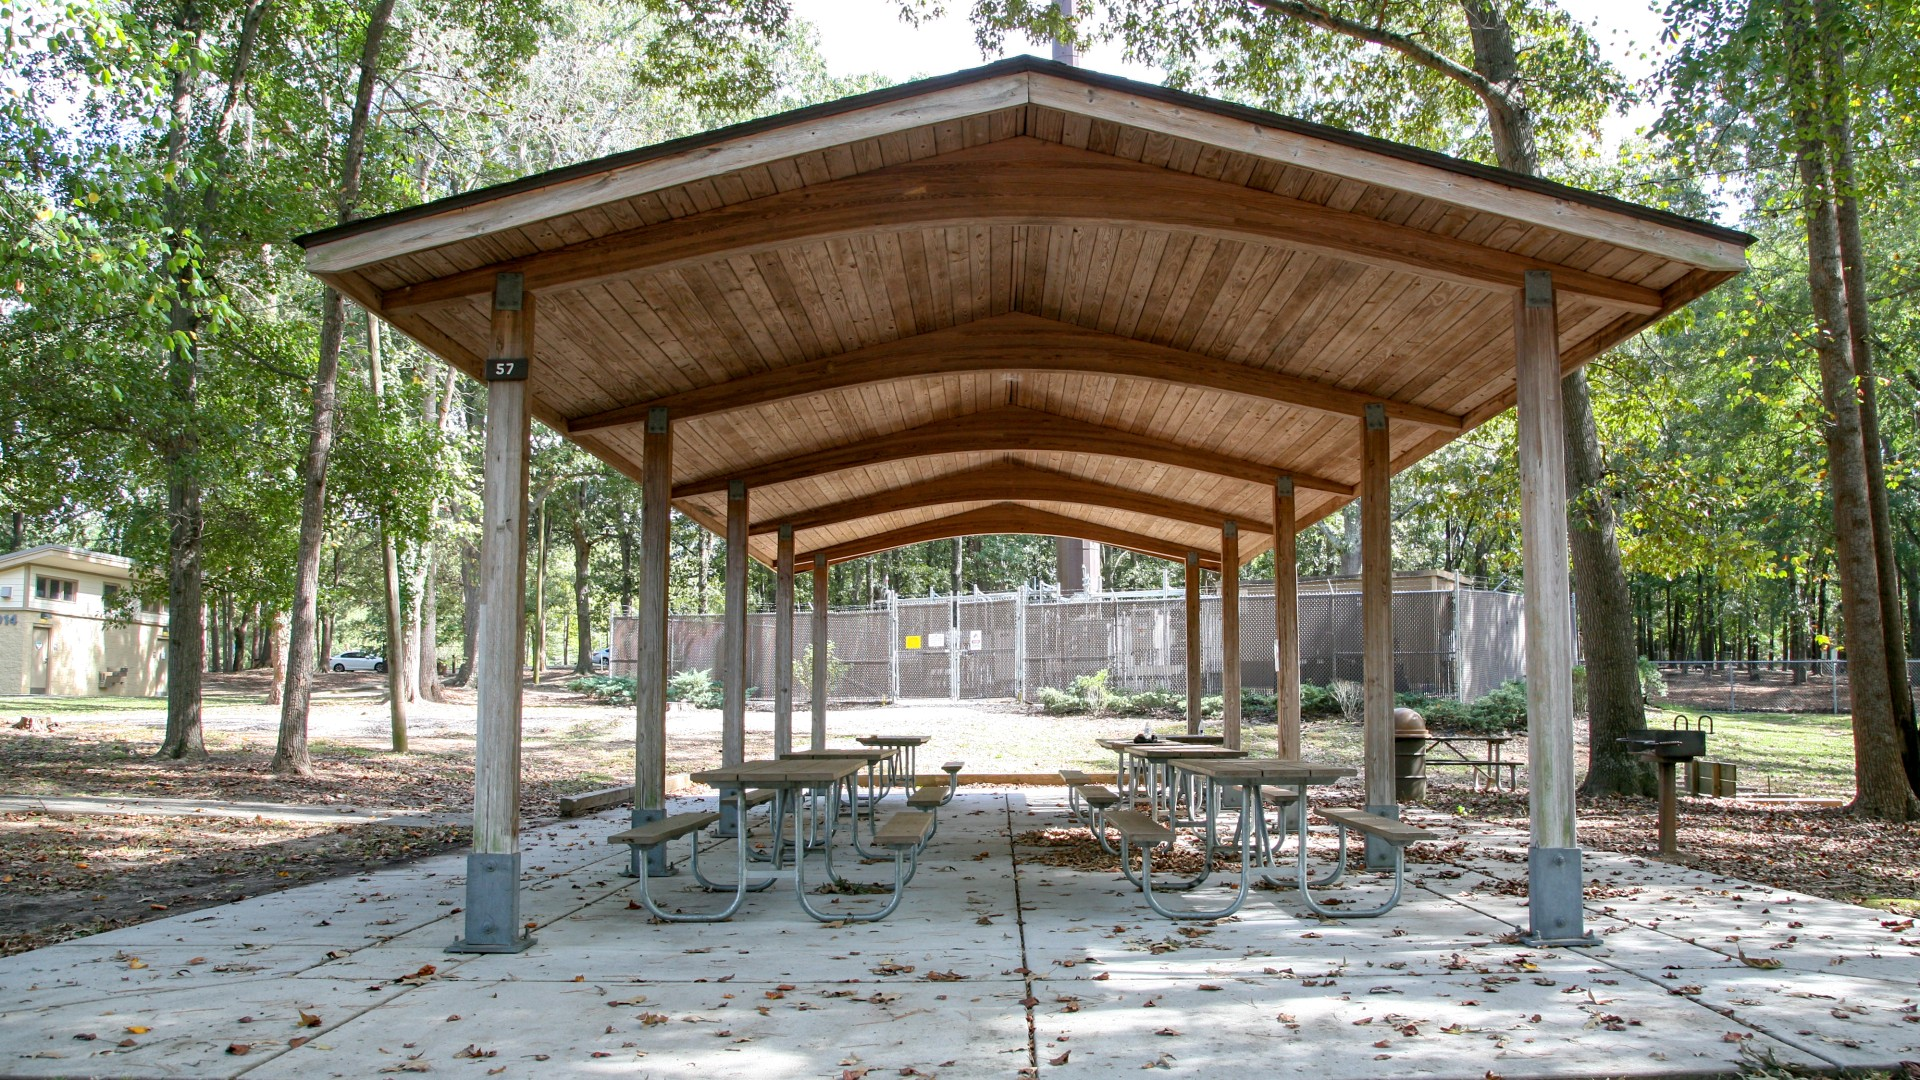 Outdoor picnic shelter with several tables and a grill at Oakwood Park